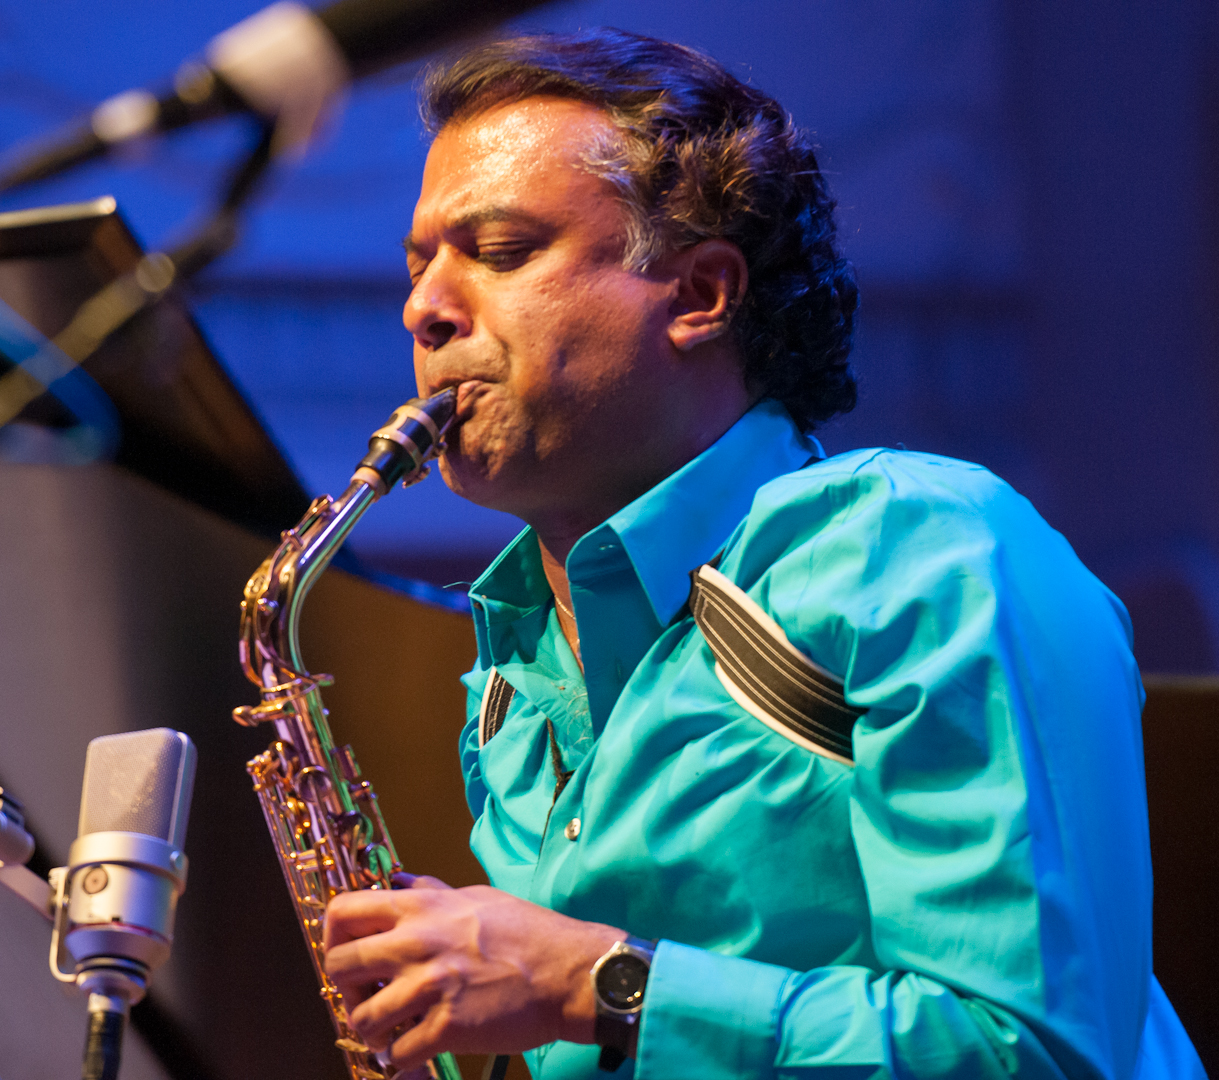 Rudresh Mahanthappa with the Mark Dresser Quintet at the Vision Festival 2012